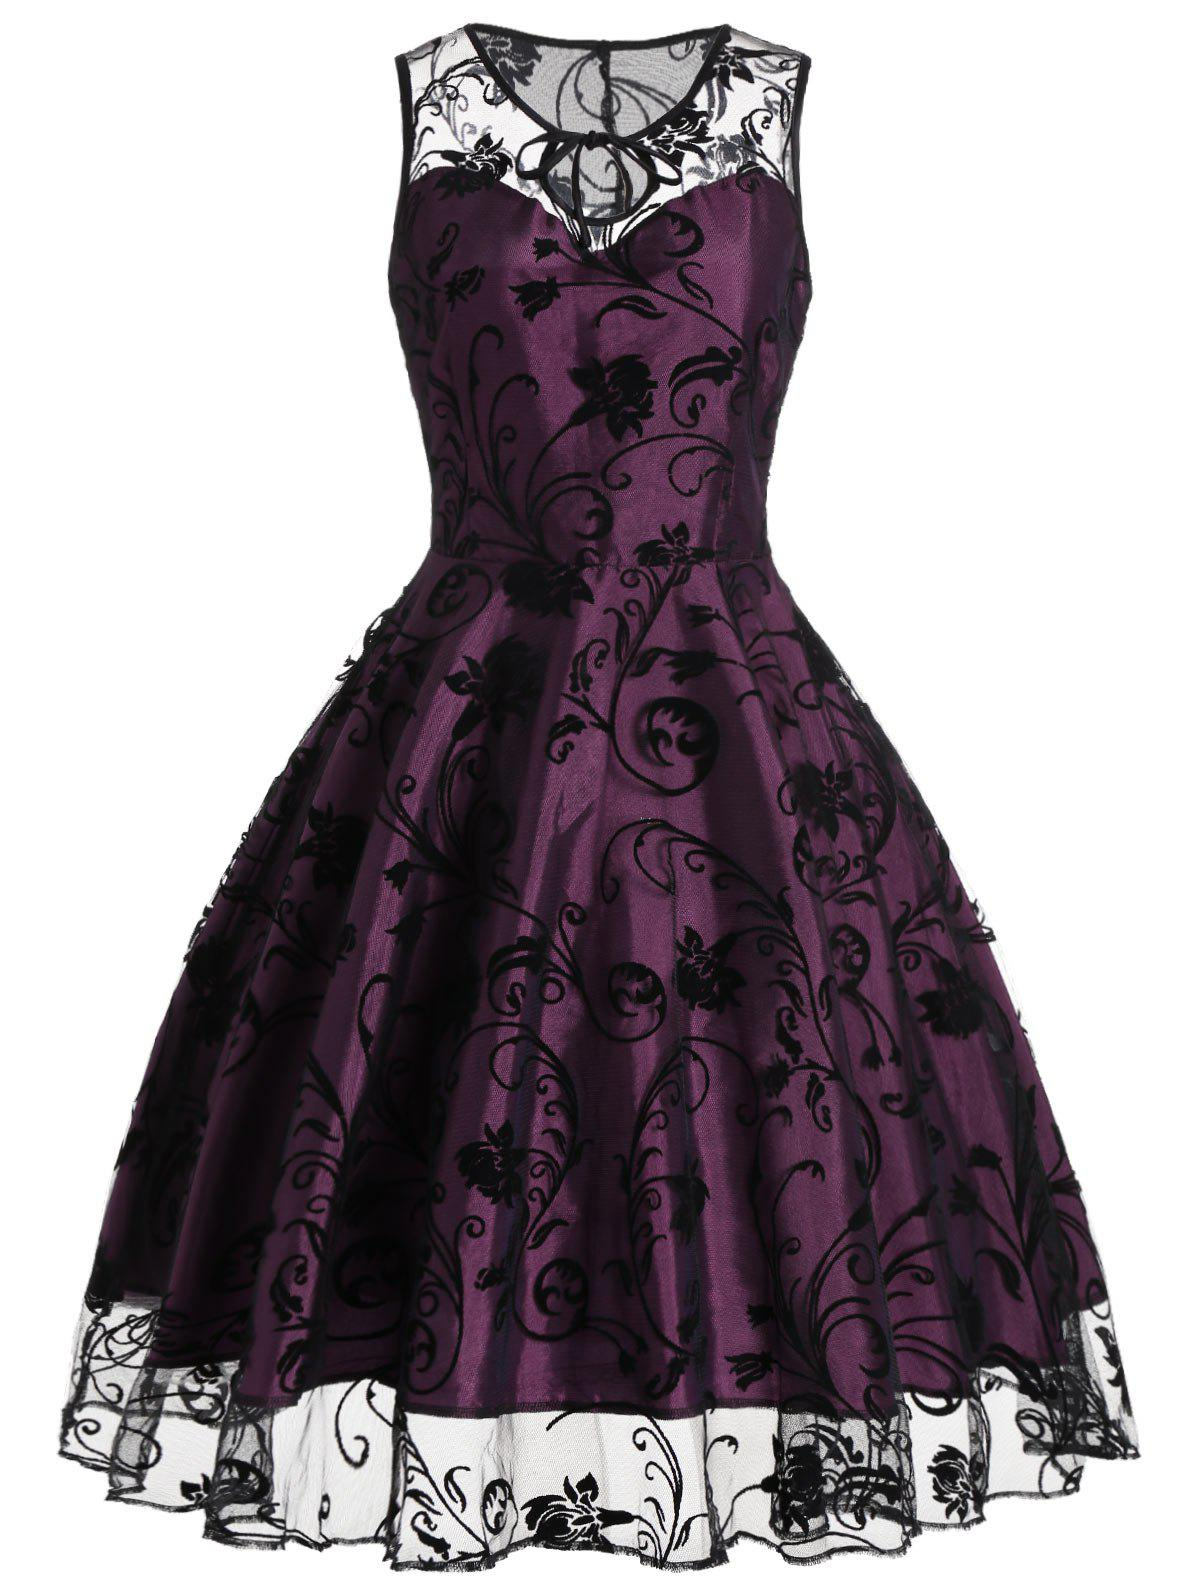 Tulle Floral Tea Length Vintage Party DressWOMEN<br><br>Size: 2XL; Color: PURPLISH RED; Style: Vintage; Material: Polyester; Silhouette: A-Line; Dresses Length: Mid-Calf; Neckline: Round Collar; Sleeve Length: Sleeveless; Pattern Type: Floral; With Belt: No; Season: Summer; Weight: 0.3700kg; Package Contents: 1 x Dress;